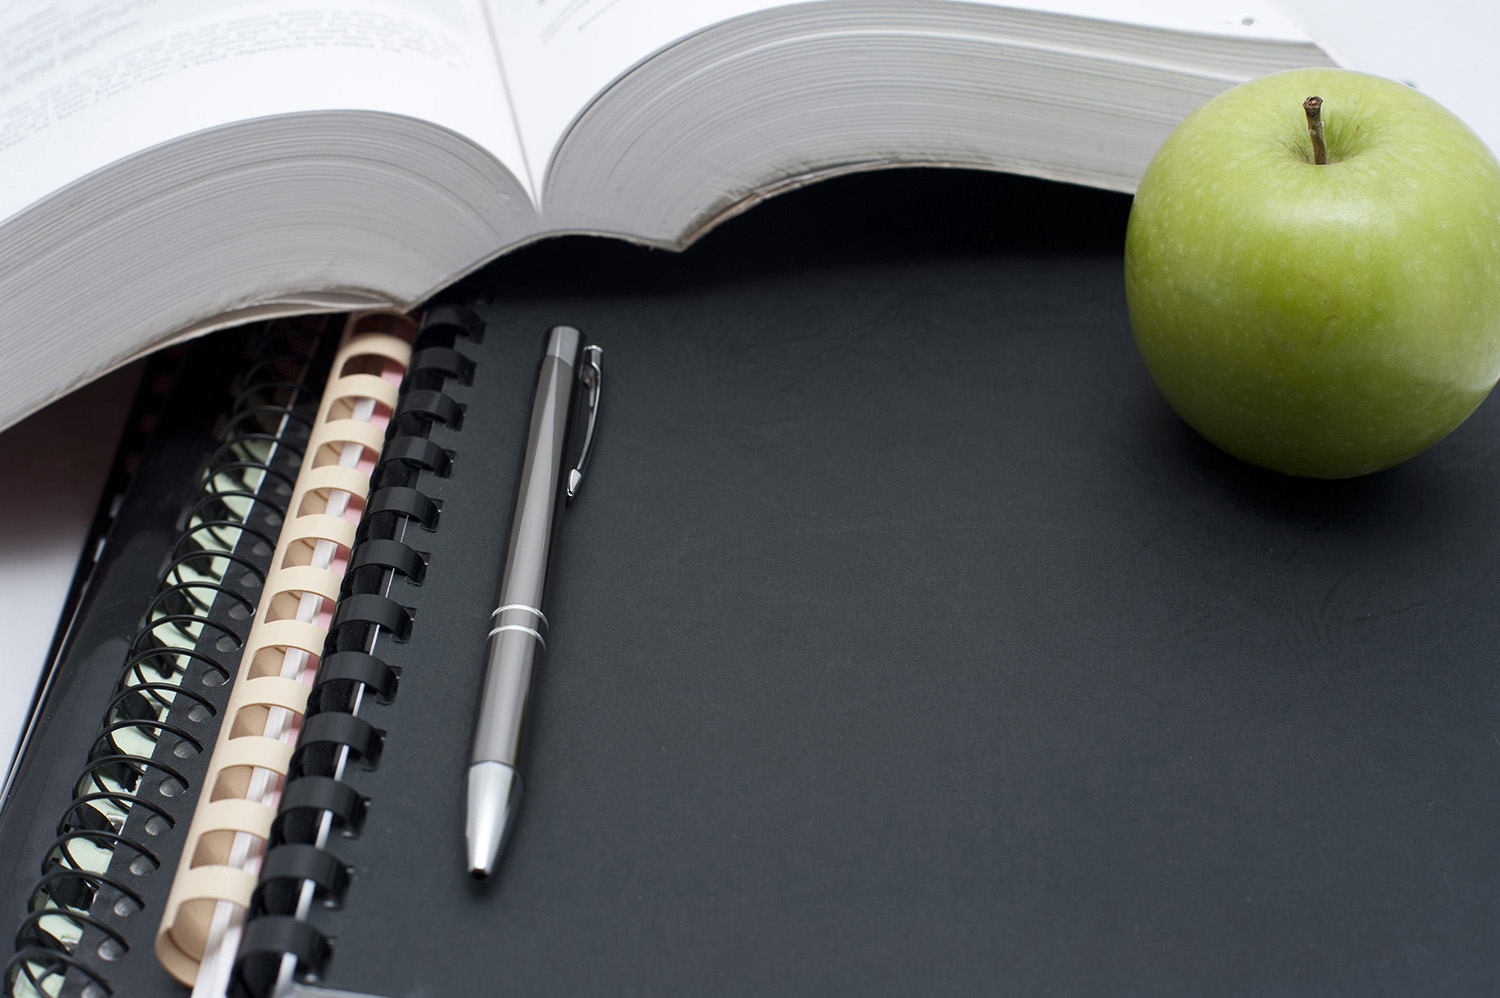 Education and learning background with a fresh healthy green apple alongside an open book with a pen and spiral binders